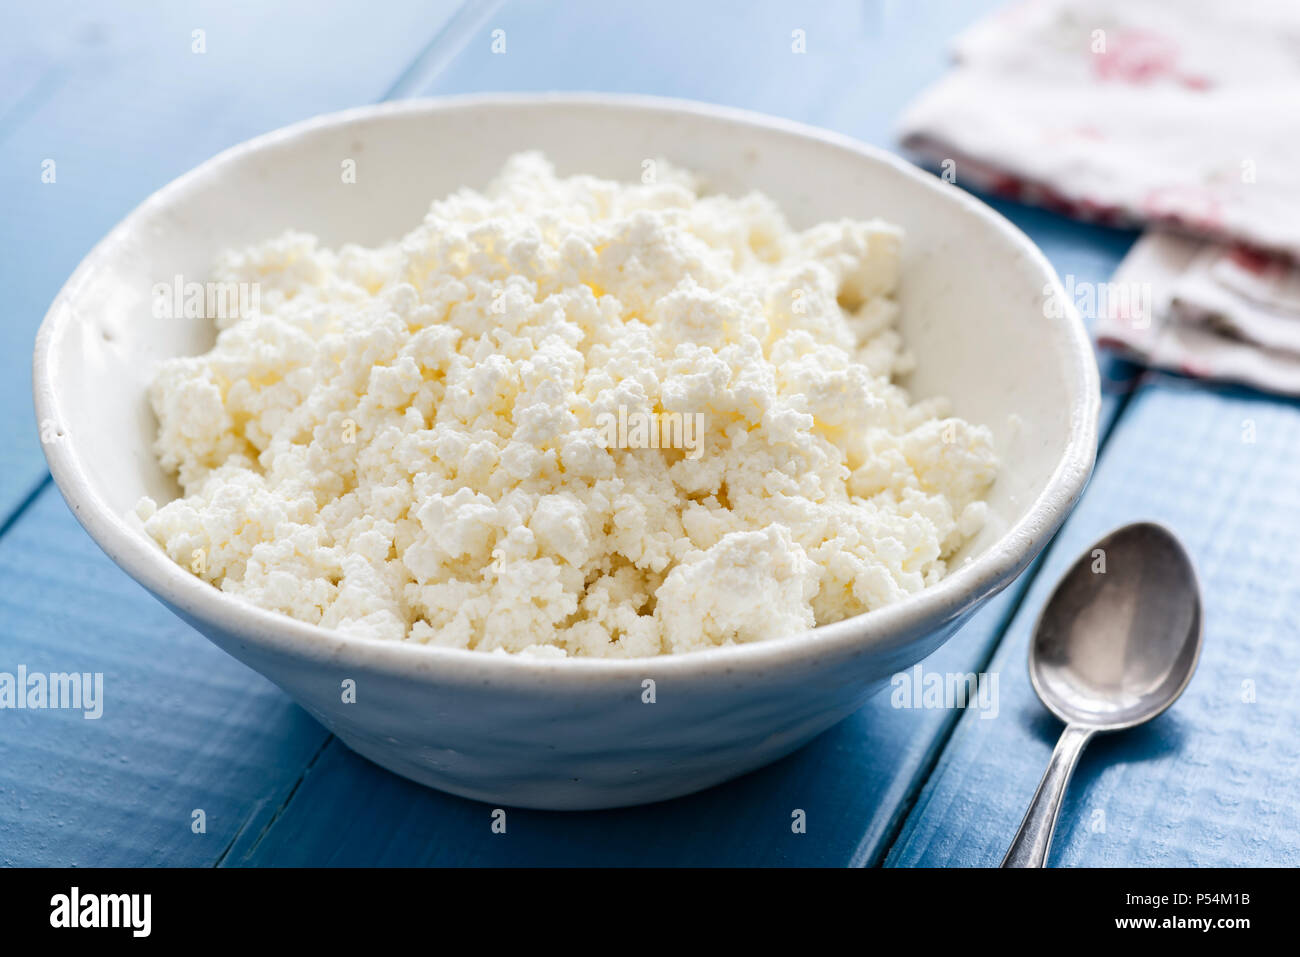 Ricotta or cottage cheese in white bowl on blue table. Healthy dairy product. Tvorog or farmer's cheese. - Stock Image